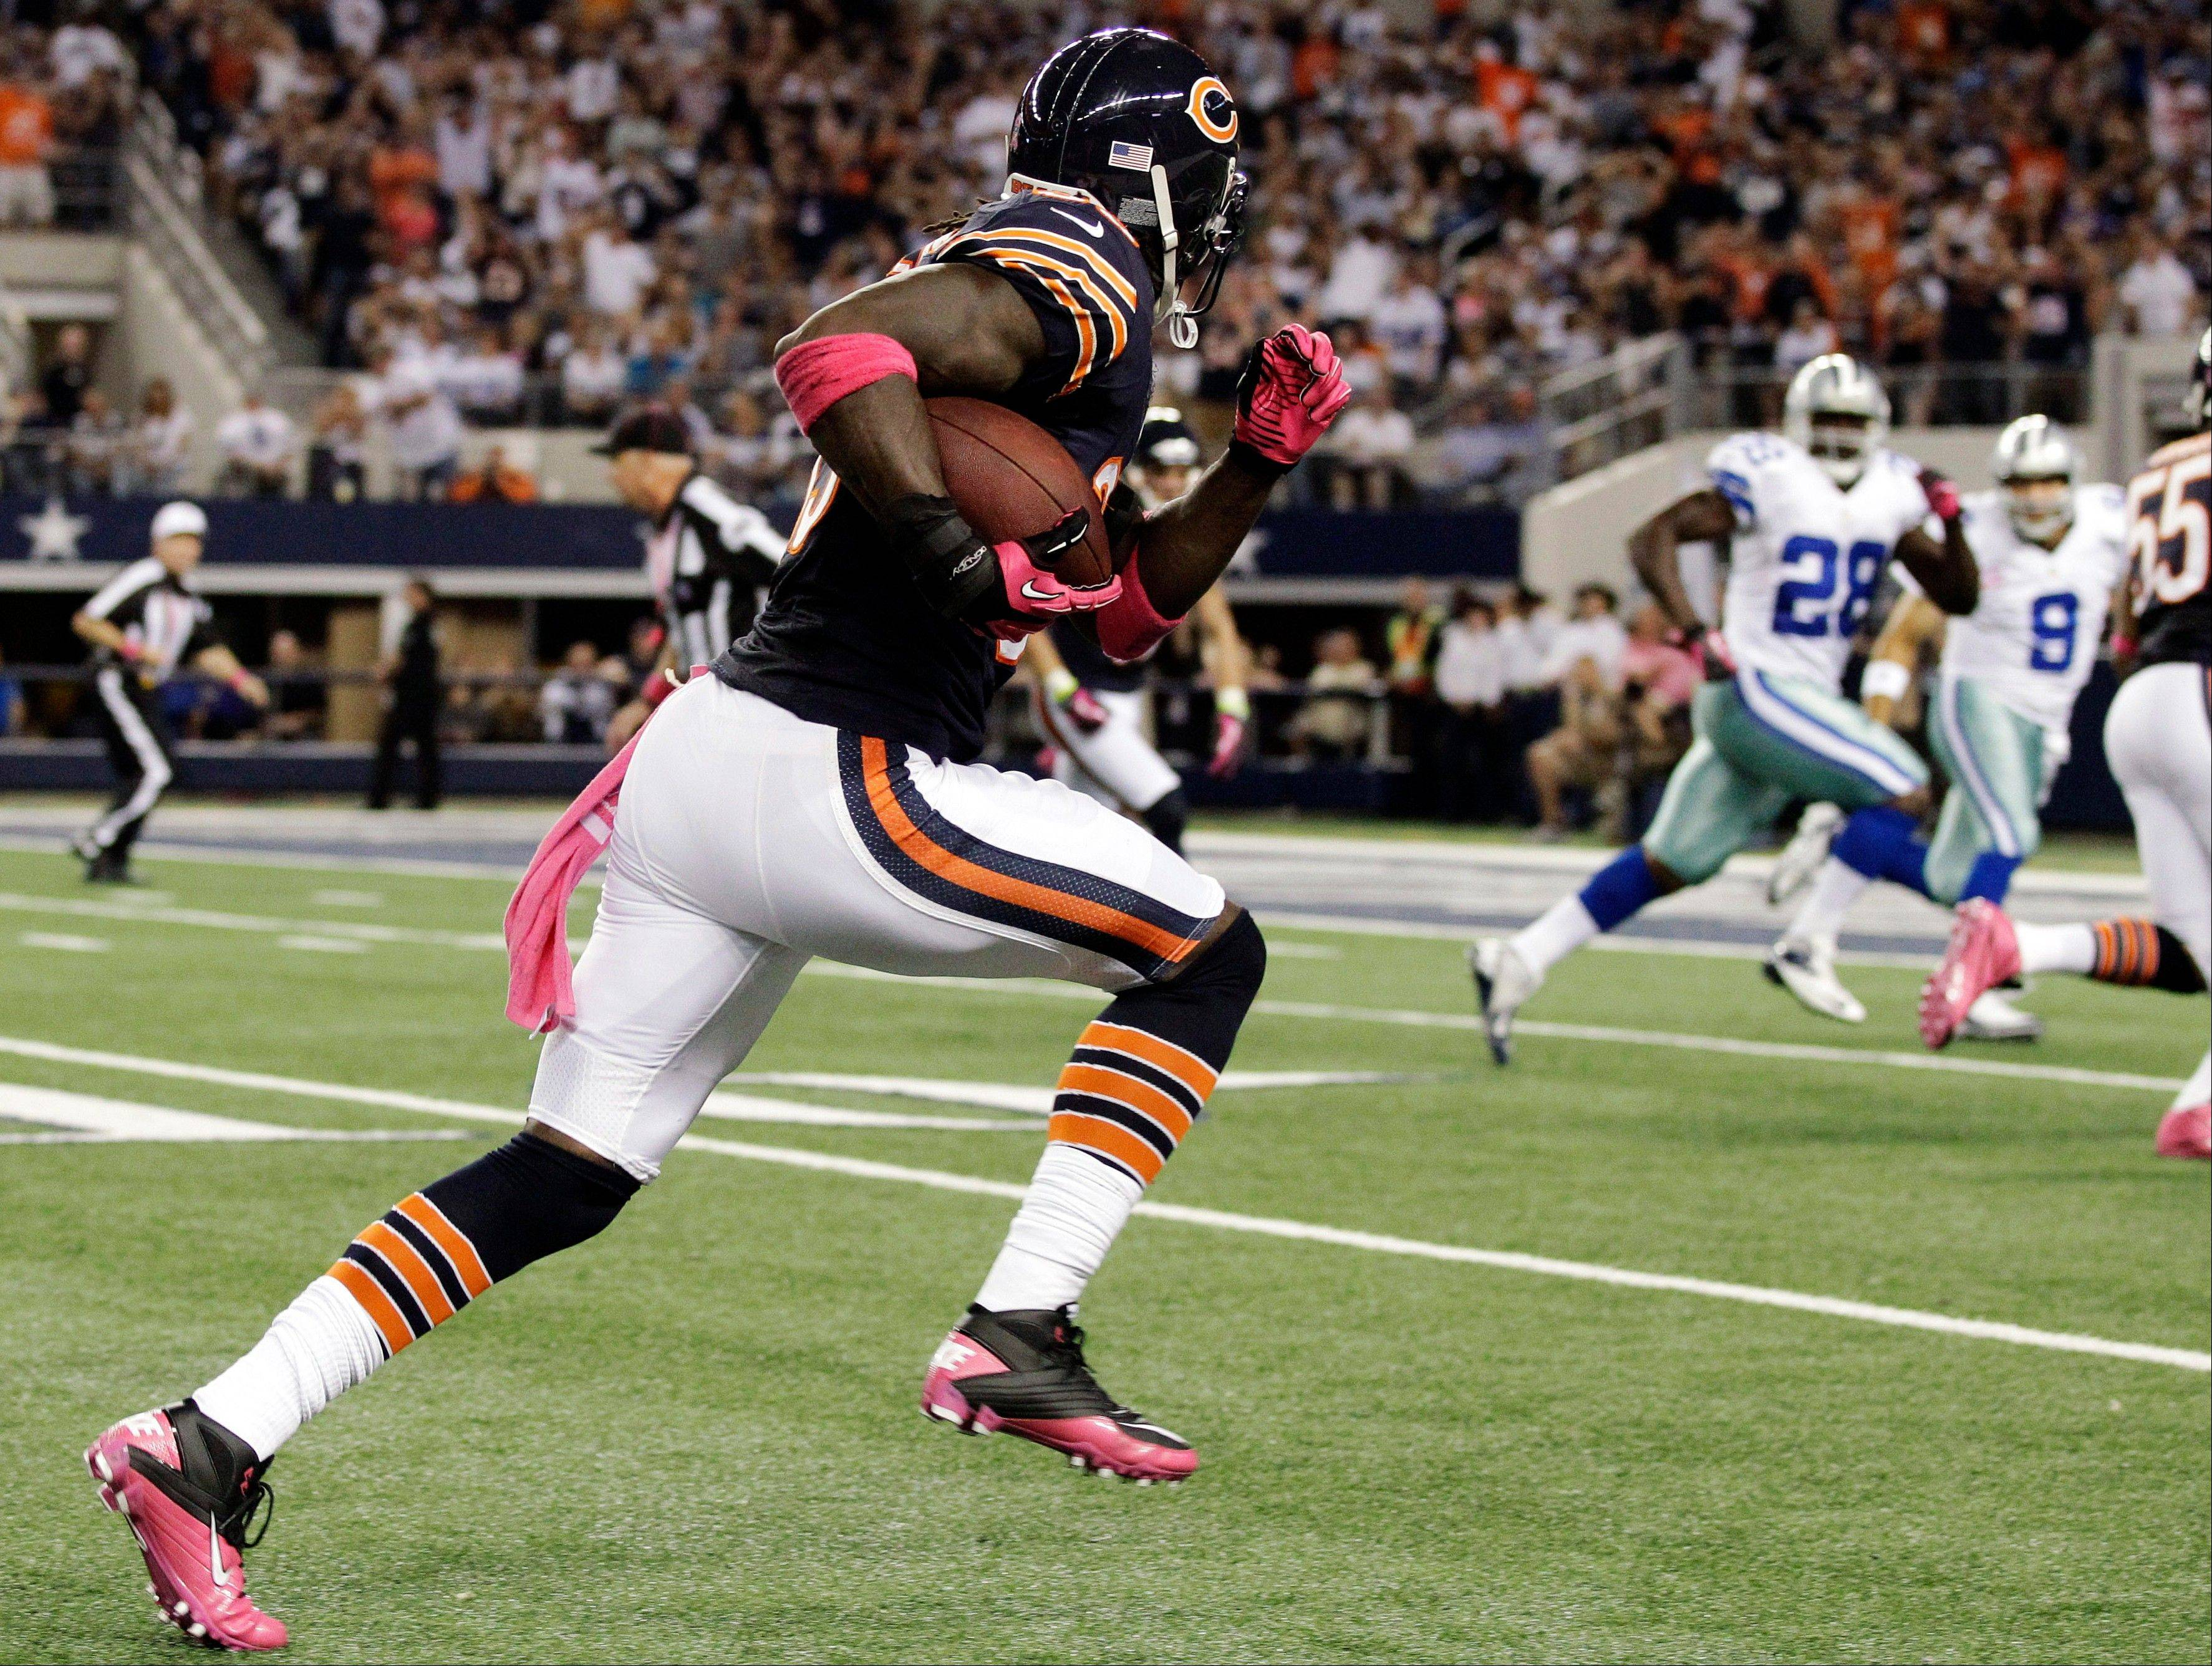 Chicago Bears cornerback Charles Tillman returns an interception for a touchdown during the first half.